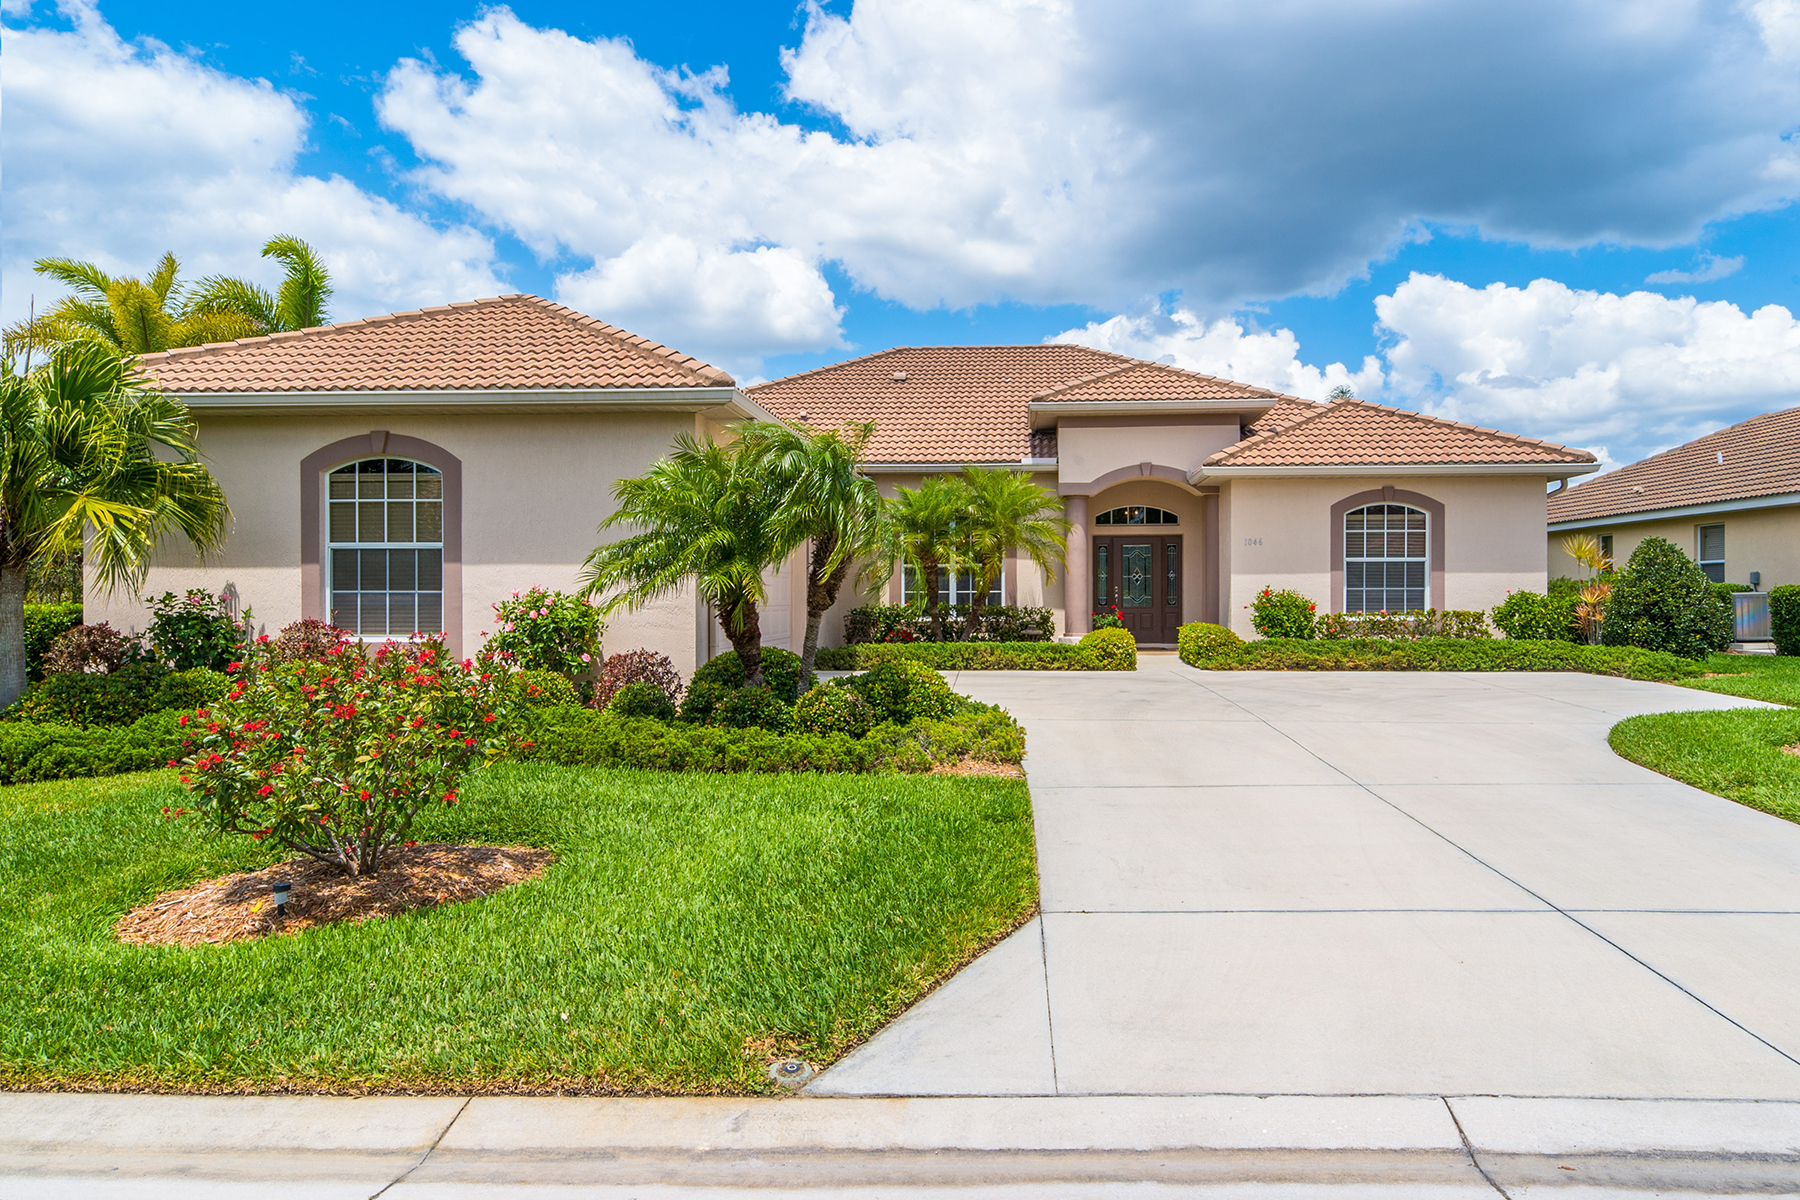 Maison unifamiliale pour l Vente à PELICAN POINTE GOLF & COUNTRY CLUB 1046 Tuscany Blvd Venice, Florida, 34292 États-Unis